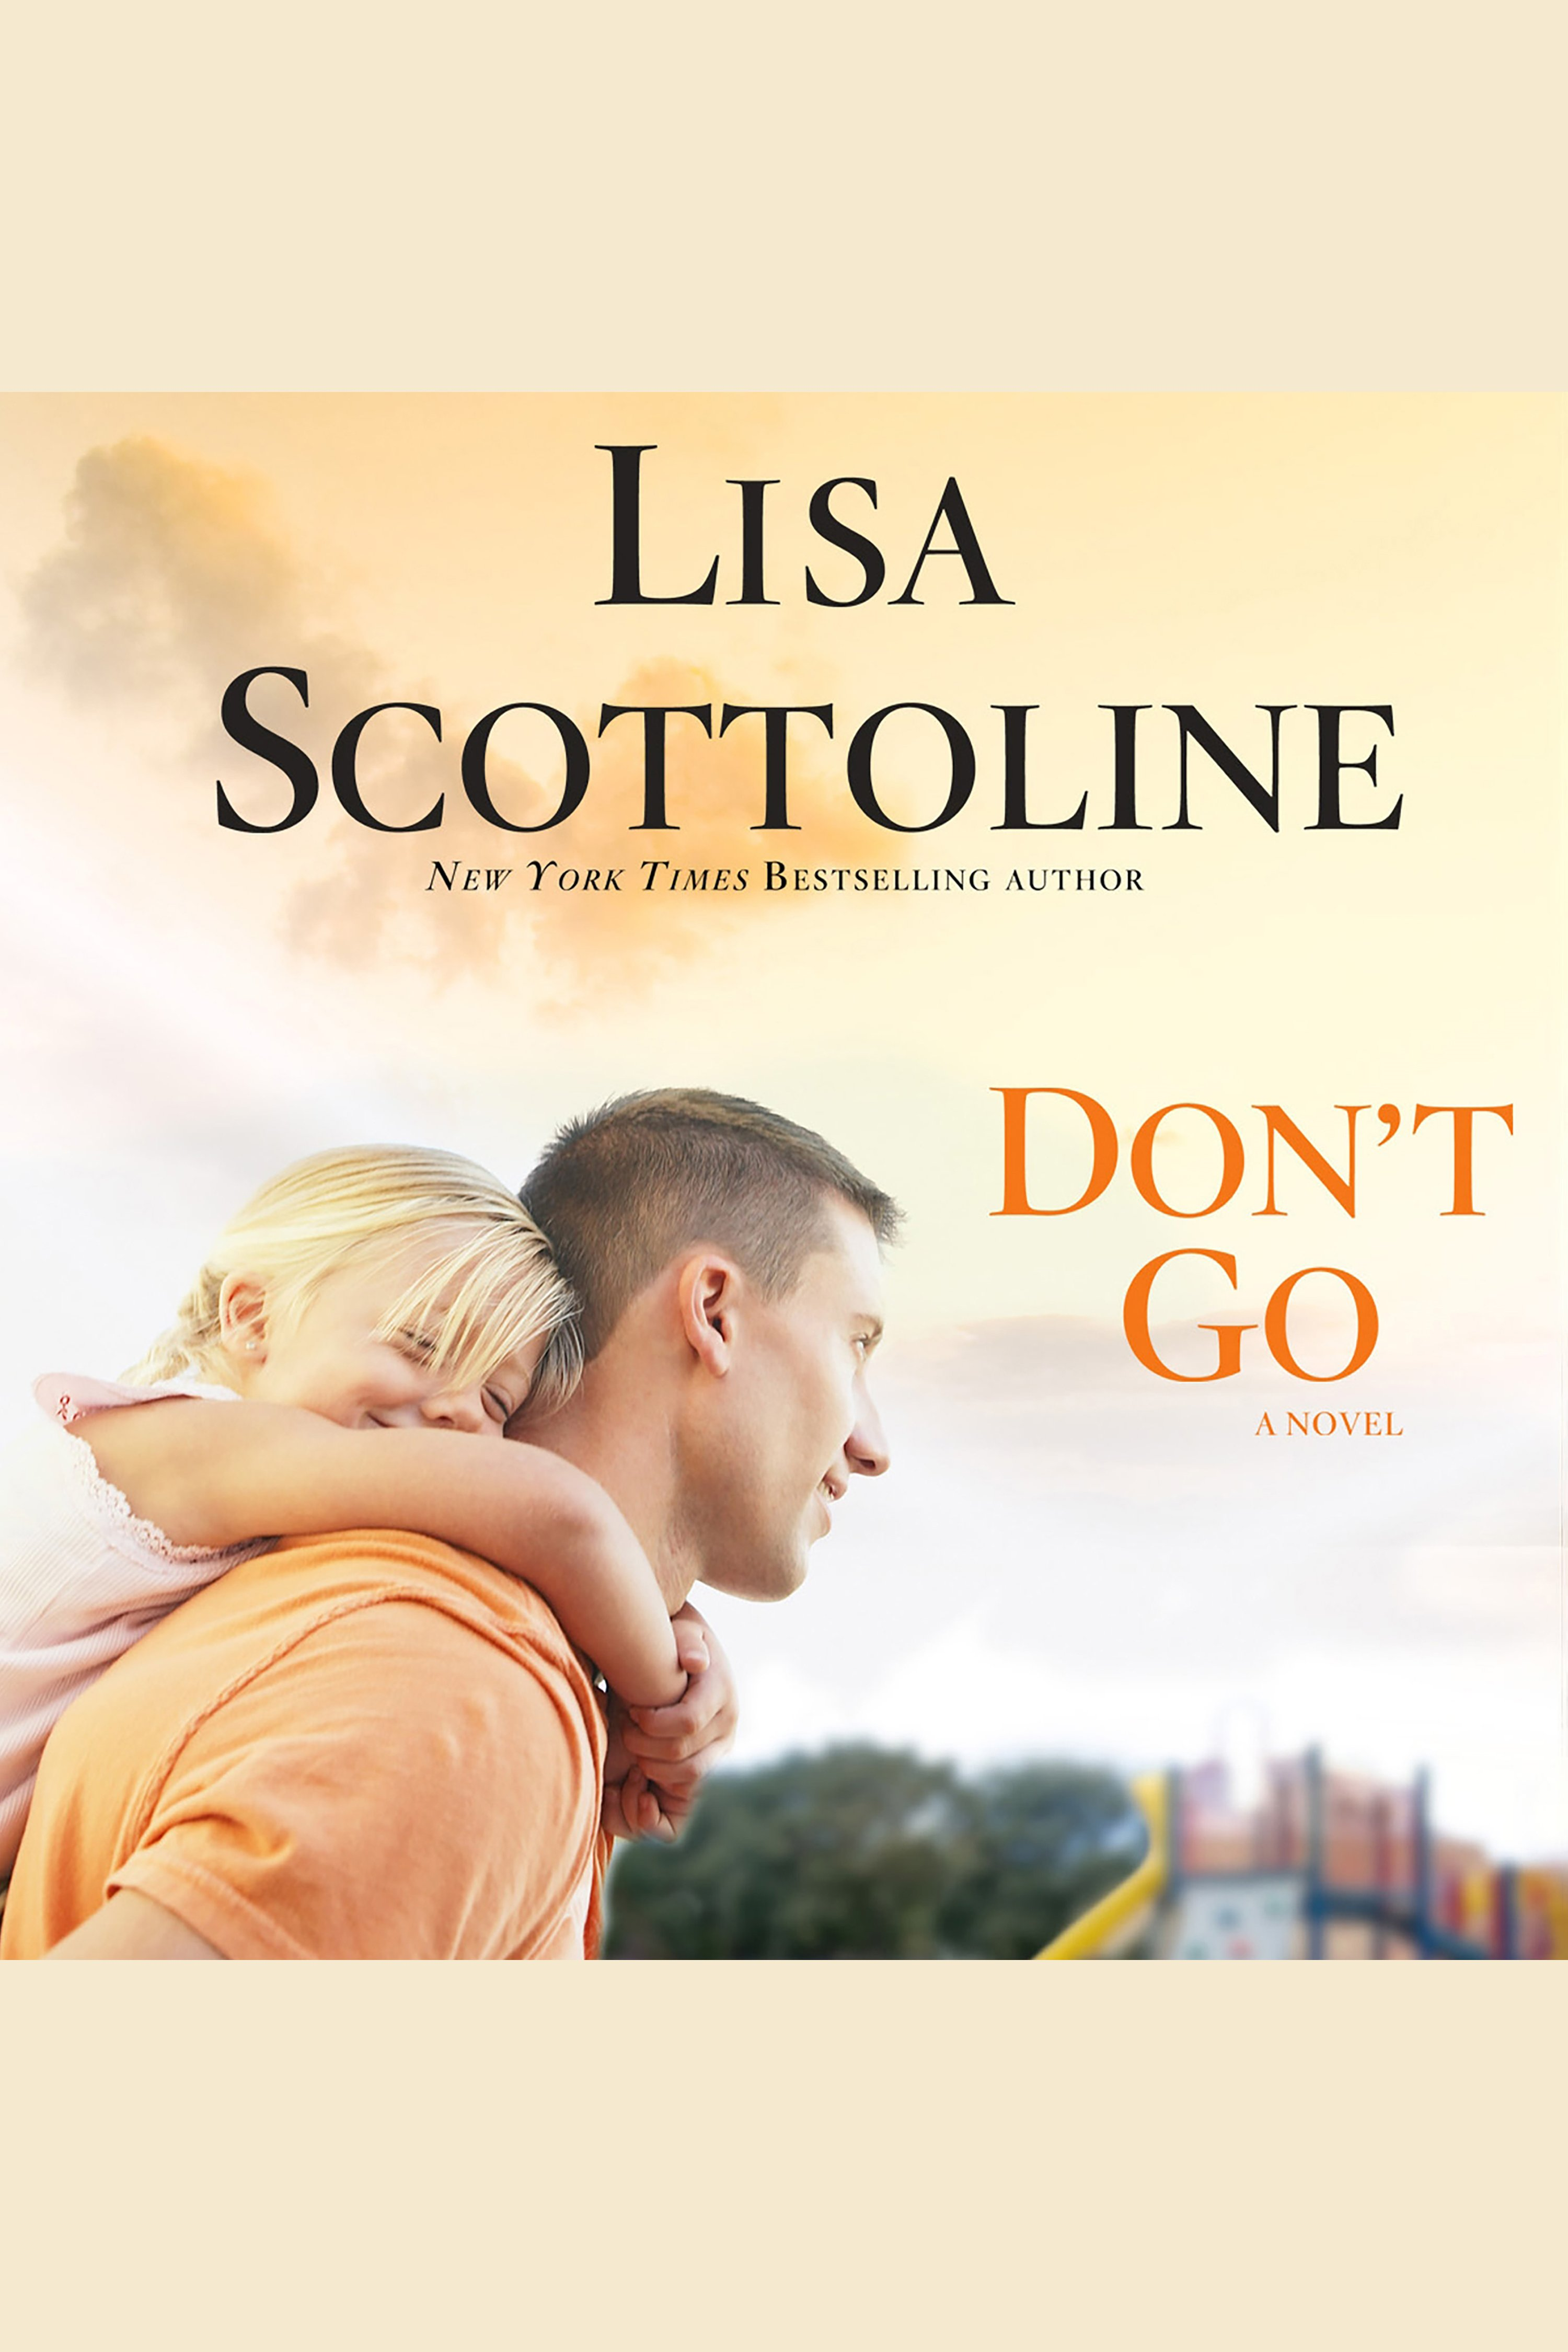 Don't go cover image